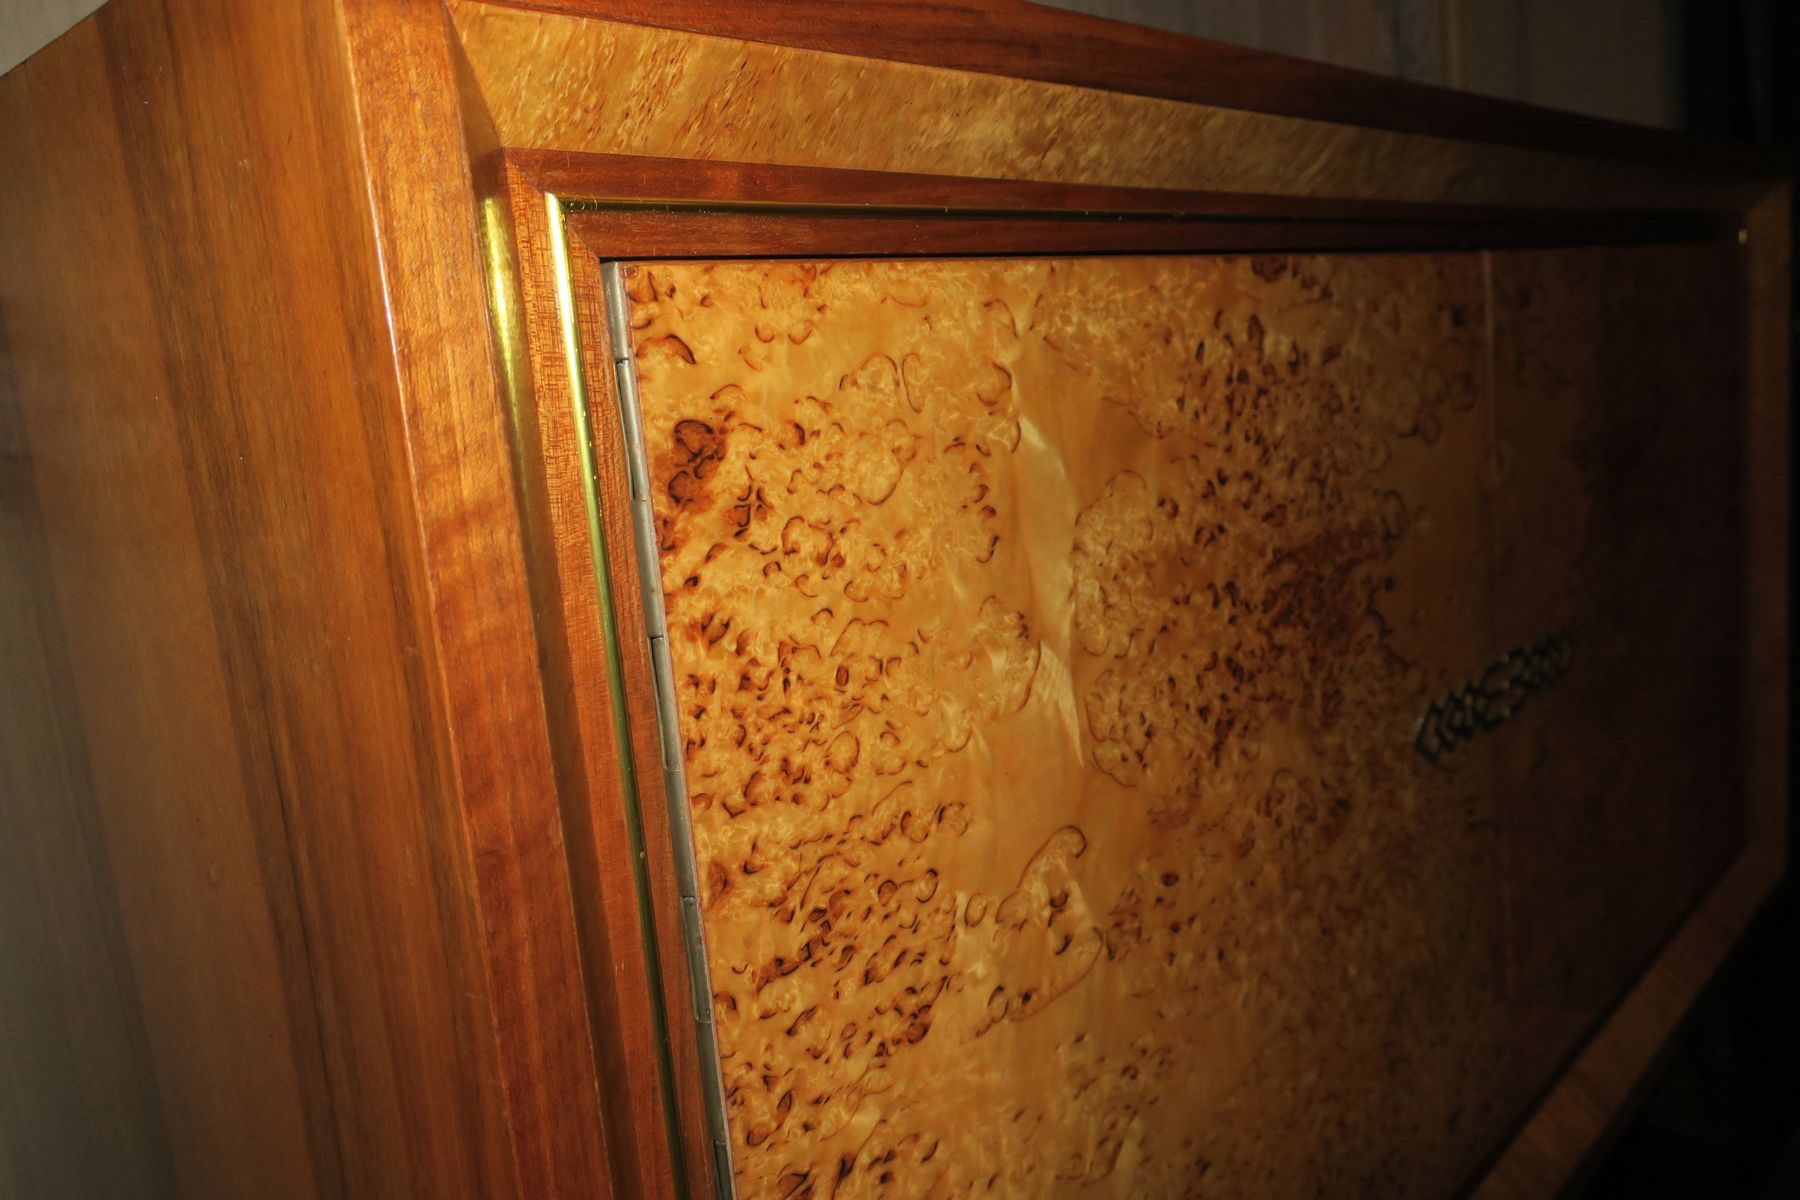 Art deco bird 39 s eye maple cabinet 1920s for sale at pamono for Birds eye maple kitchen cabinets